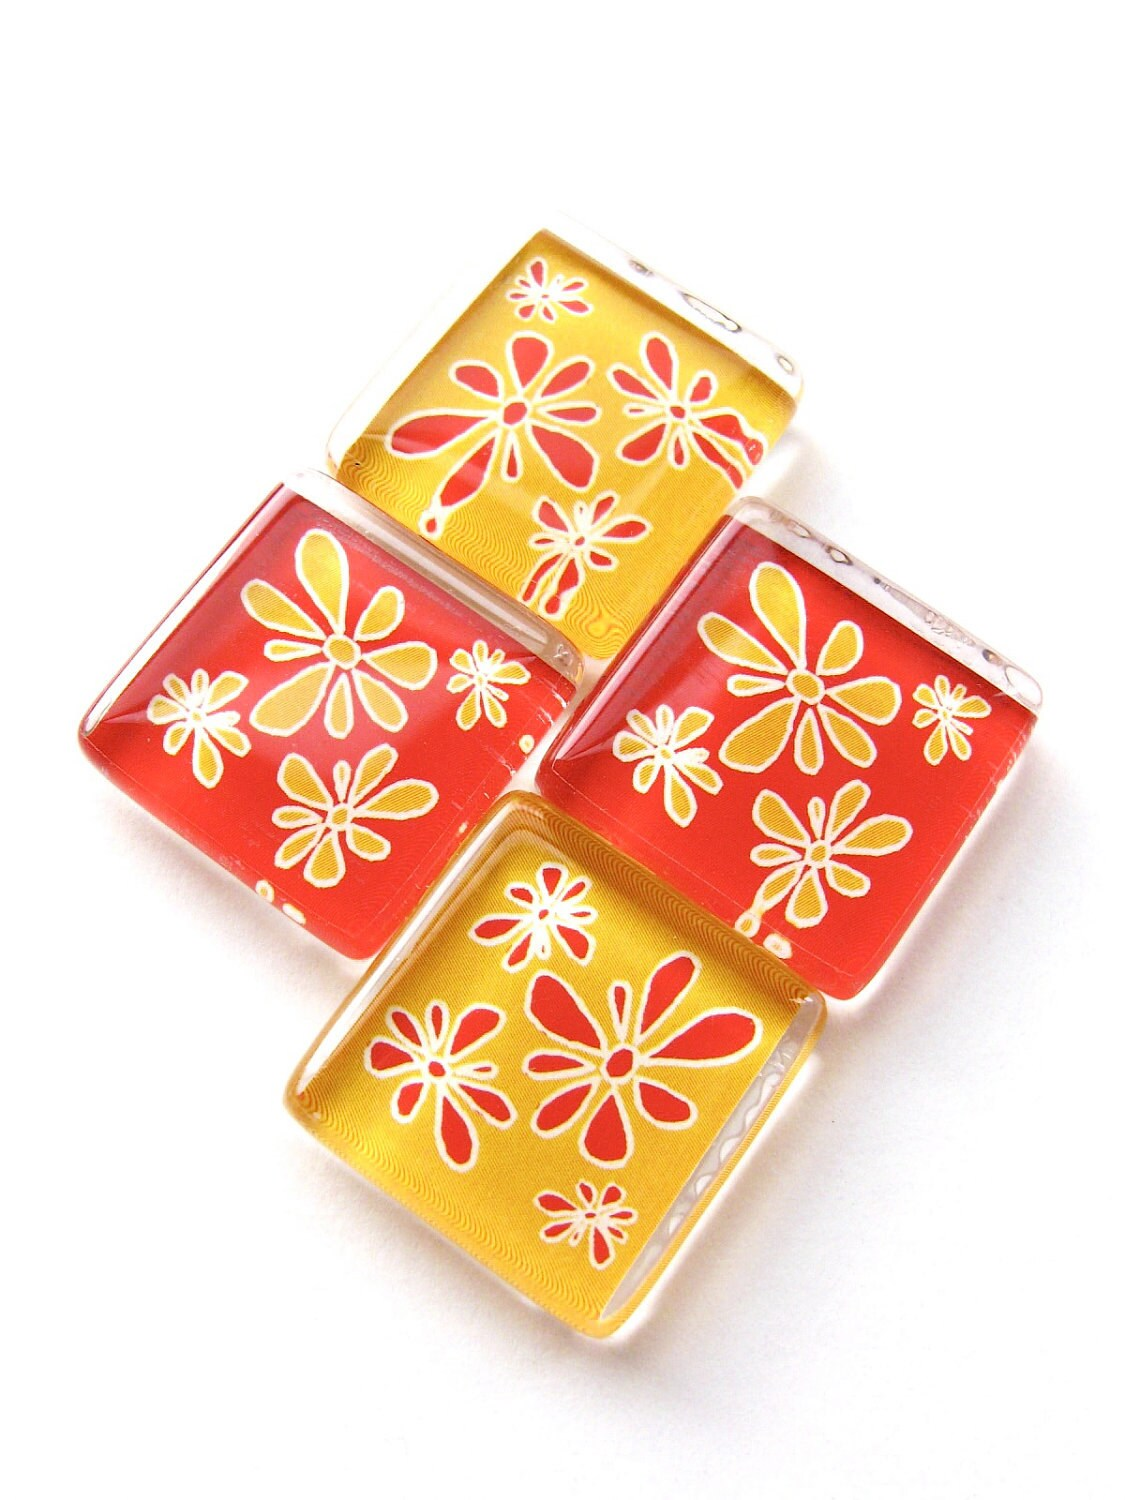 Glass magnets - Set of 4 Mod Flower Blossoms in red and yellow - PurtyBird